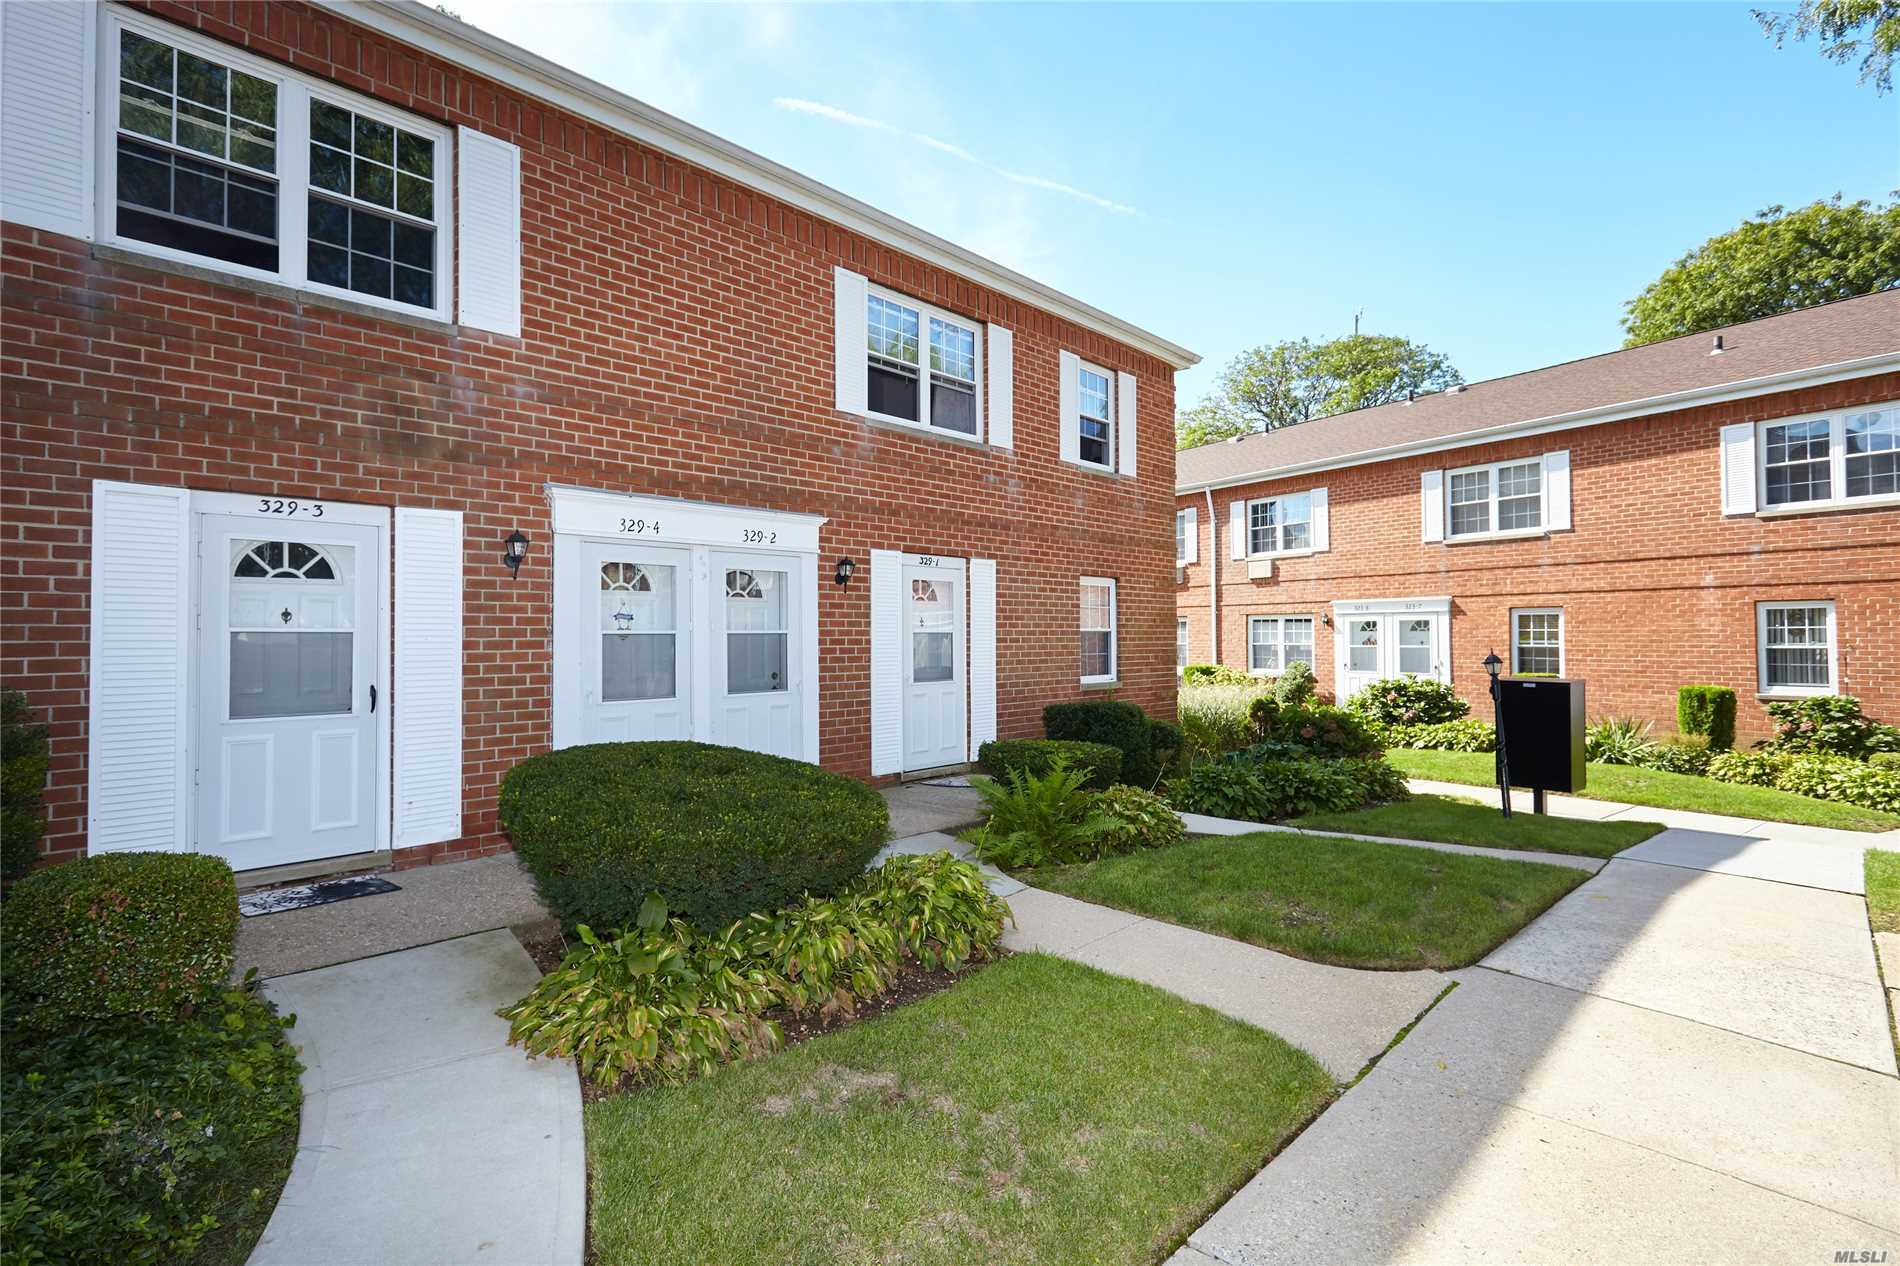 Property for sale at 329-1 Hicksville Rd, Bethpage,  NY 11714